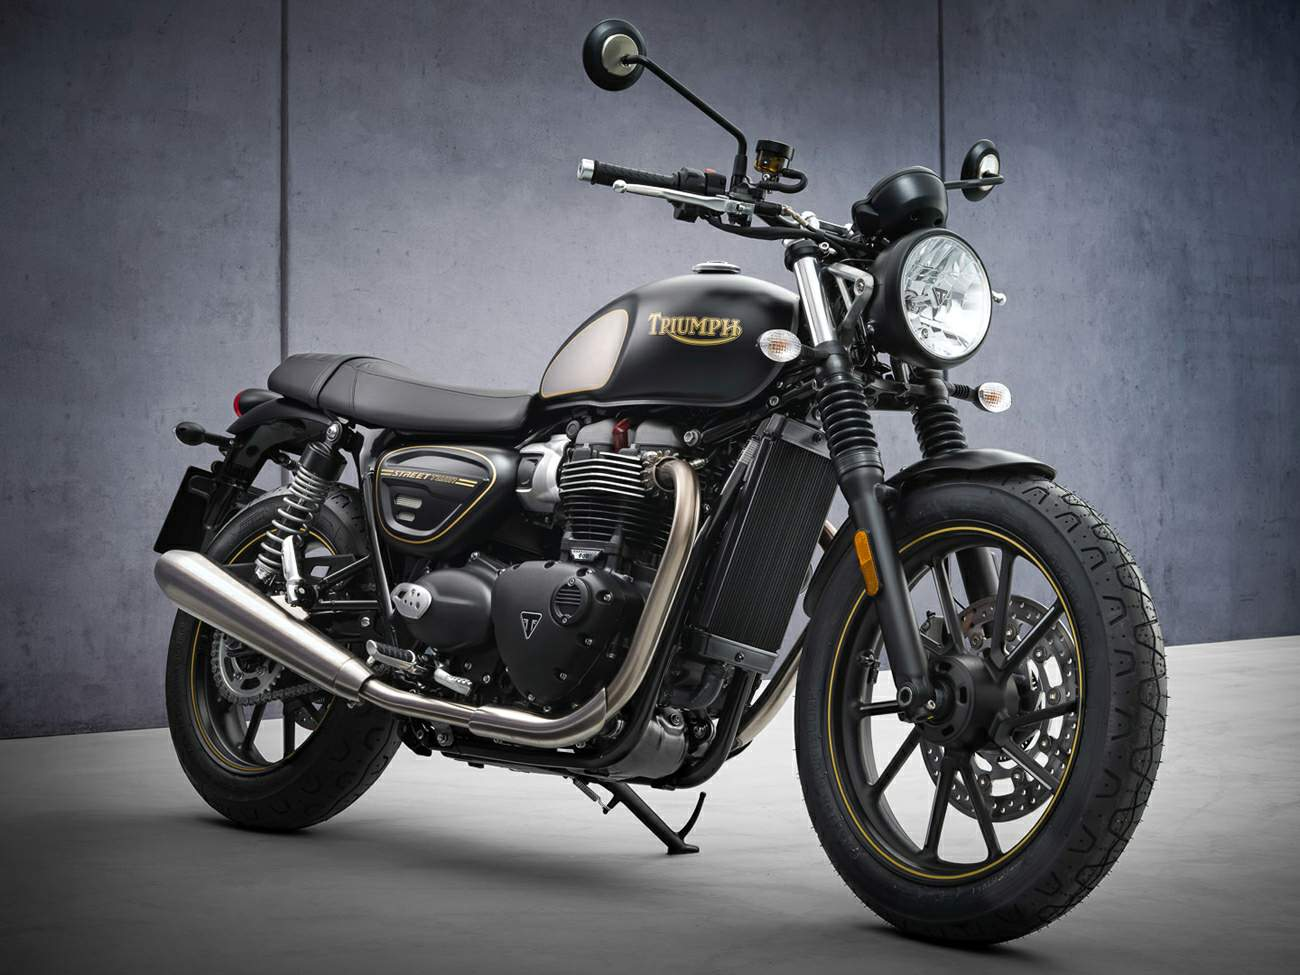 Triumph Street Twin Gold Line technical specifications